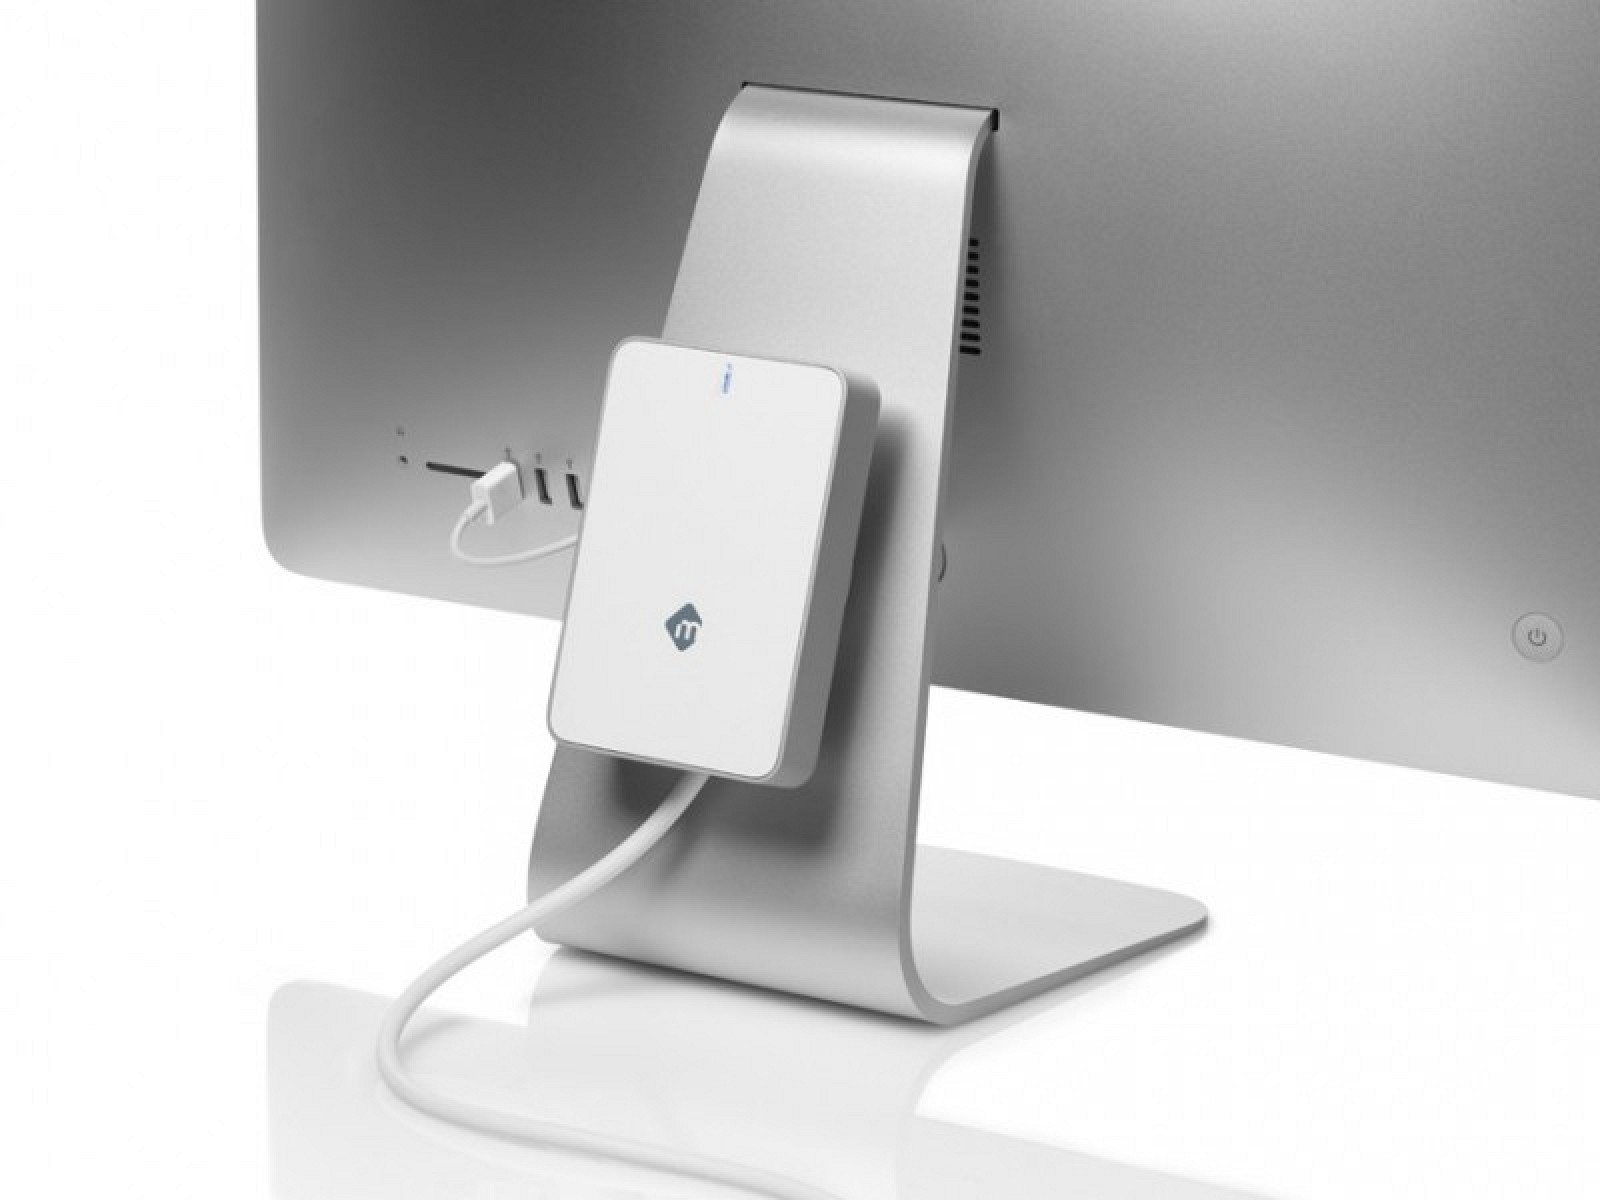 Mlogic Debuts Mback External Hard Drive That Attaches To